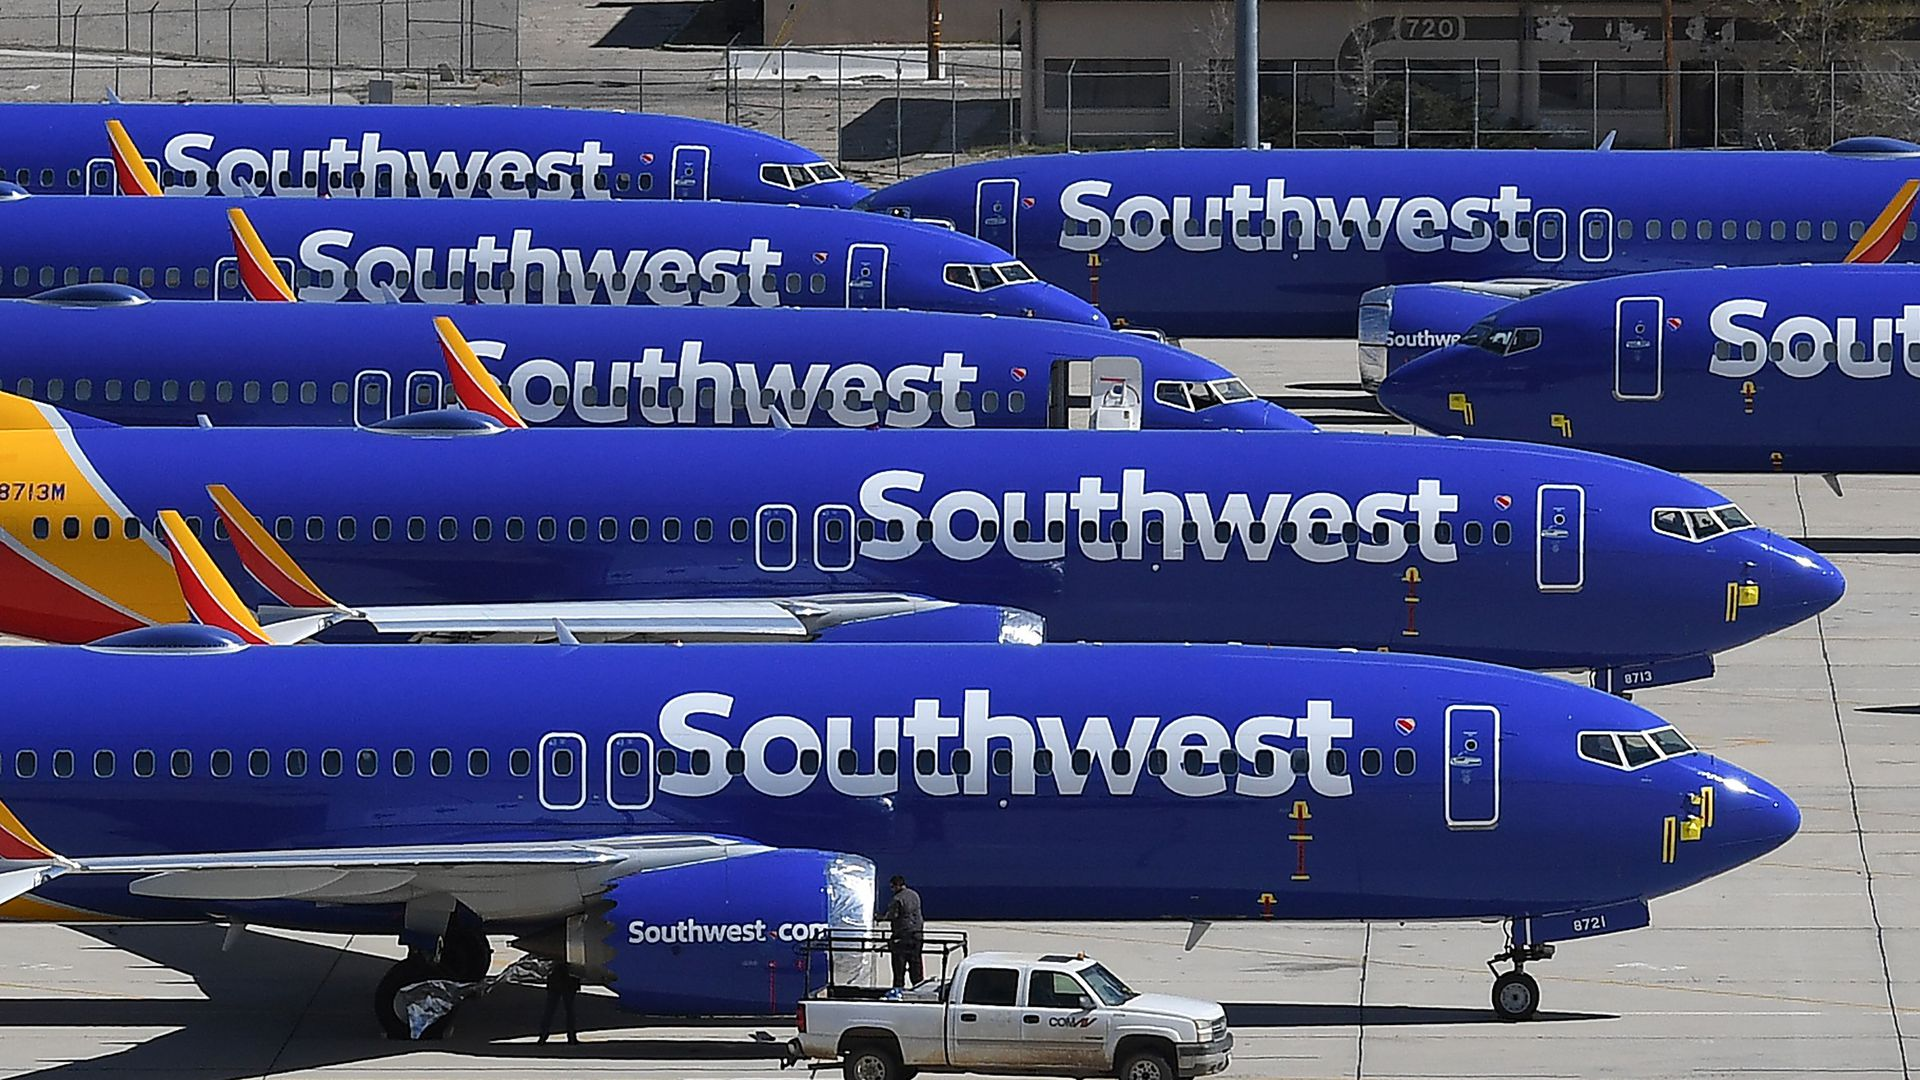 Several blue Southwest Airlines jets are parked on a tarmac.